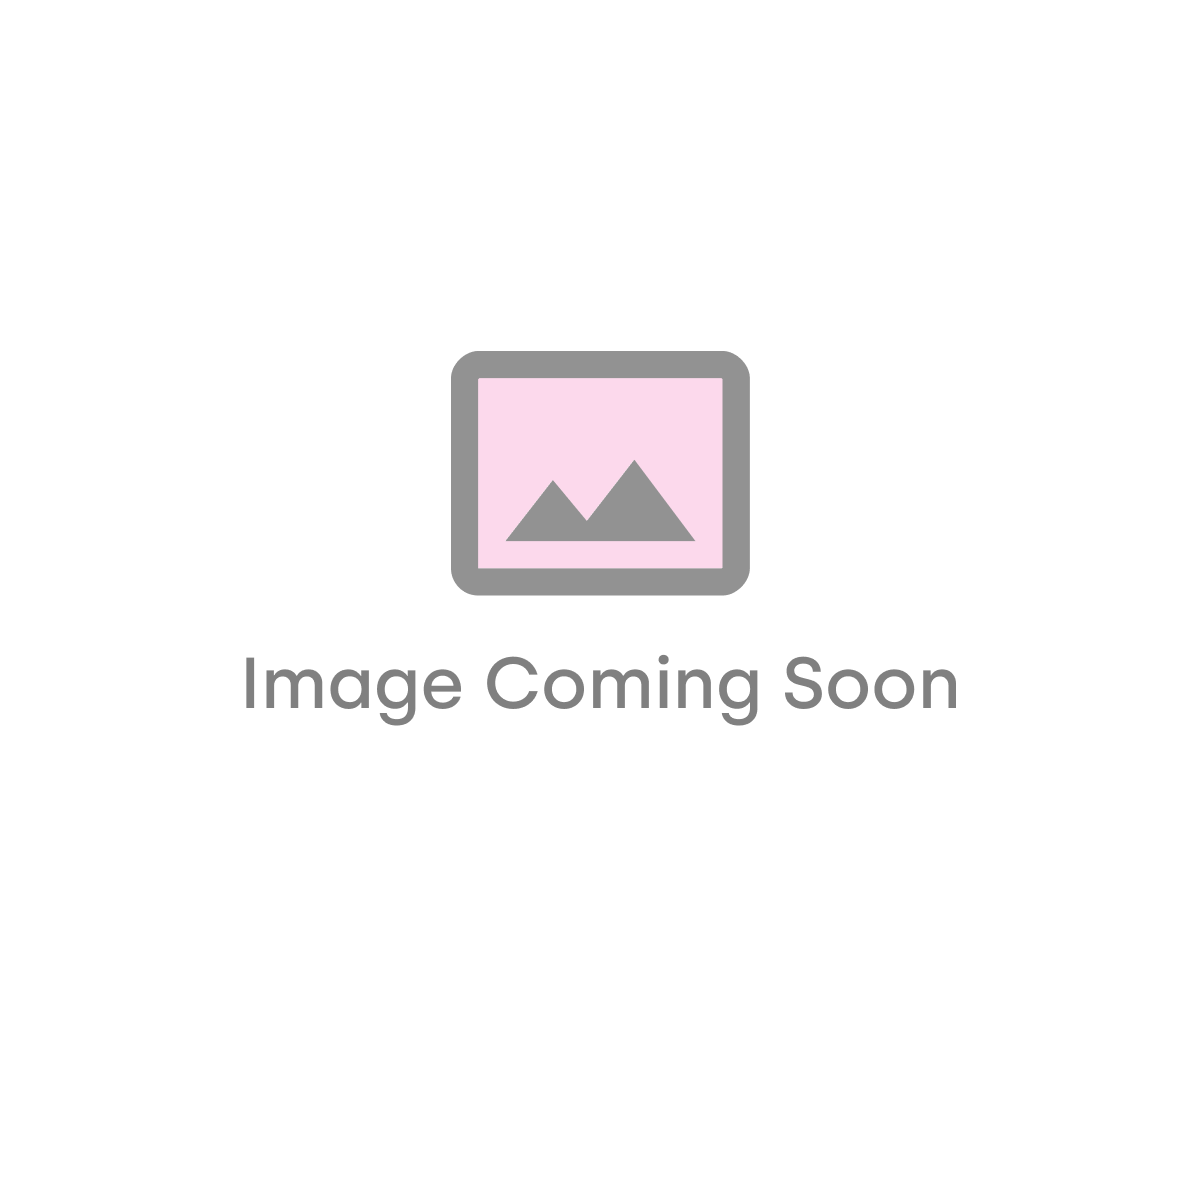 Aquadart 10 600mm Wetroom Panel - Clear Glass (18668)